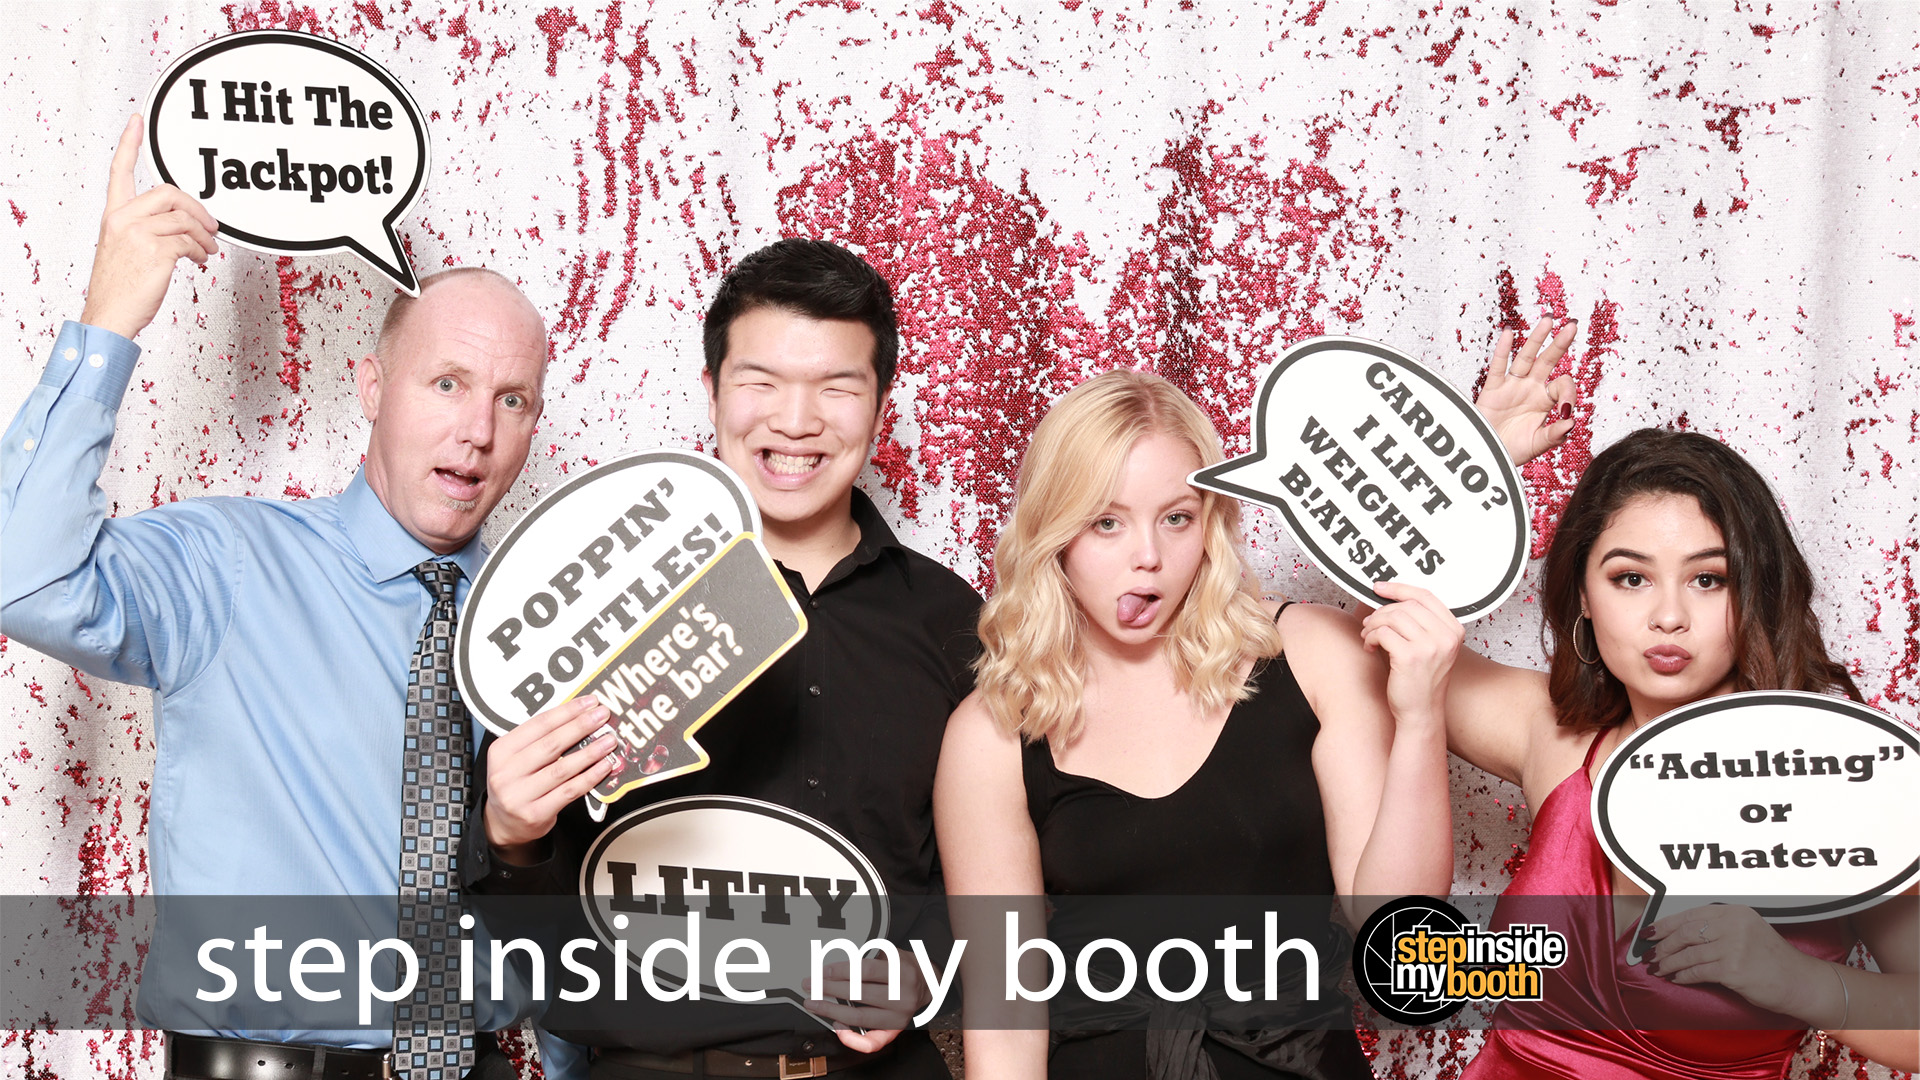 Step Inside My Booth Studio Quality Photo Booth for your event! Photo with guests from Allyson's Debutante Party on February, 19, 2019